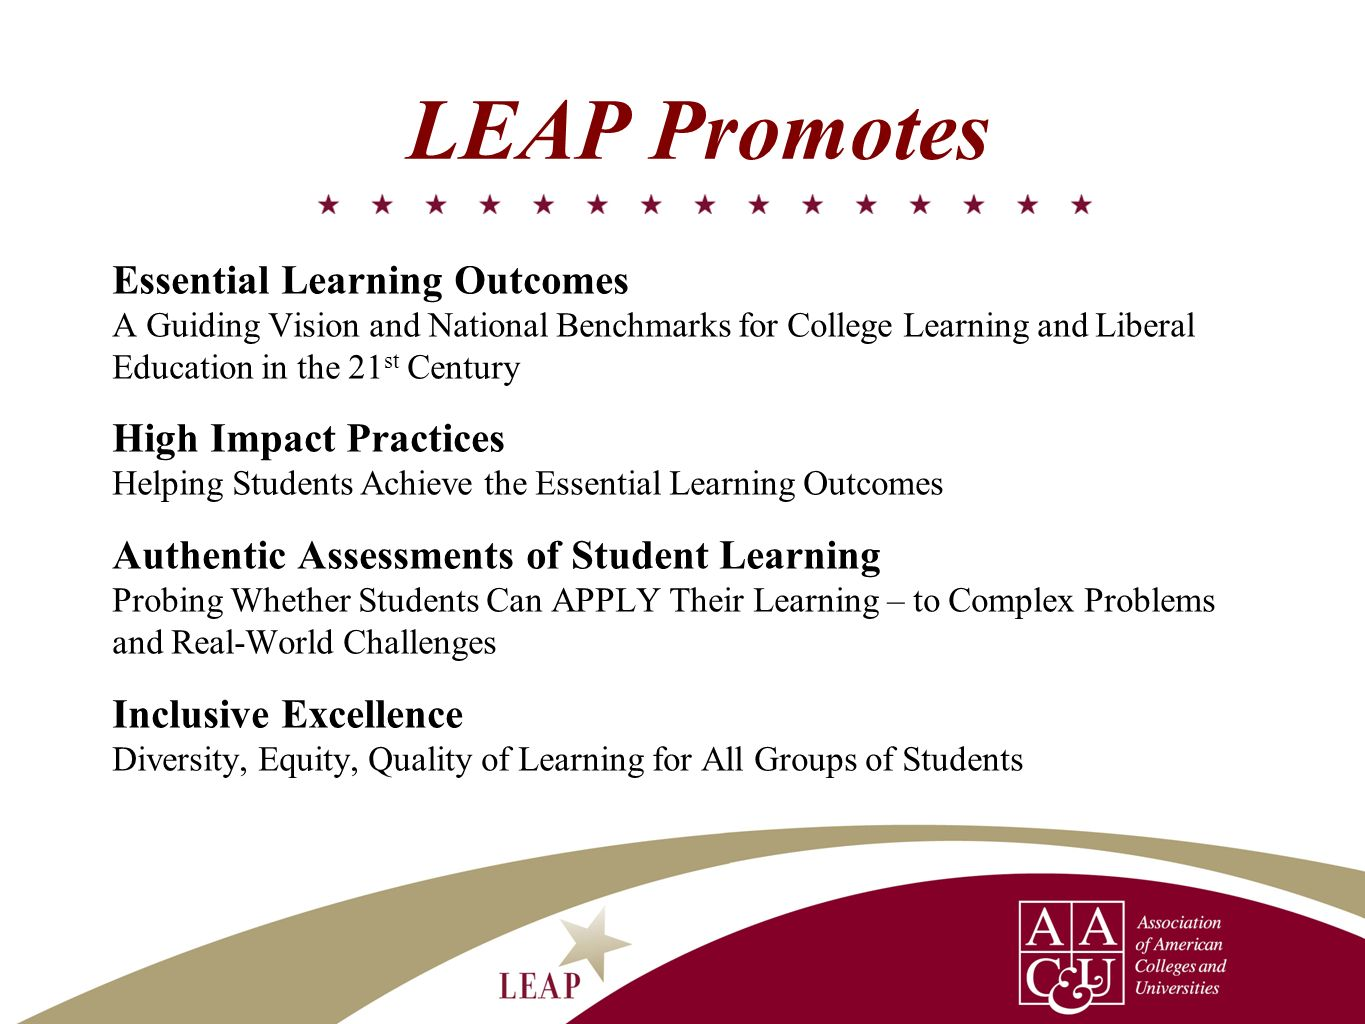 LEAP Promotes Essential Learning Outcomes A Guiding Vision and National Benchmarks for College Learning and Liberal Education in the 21 st Century Hig